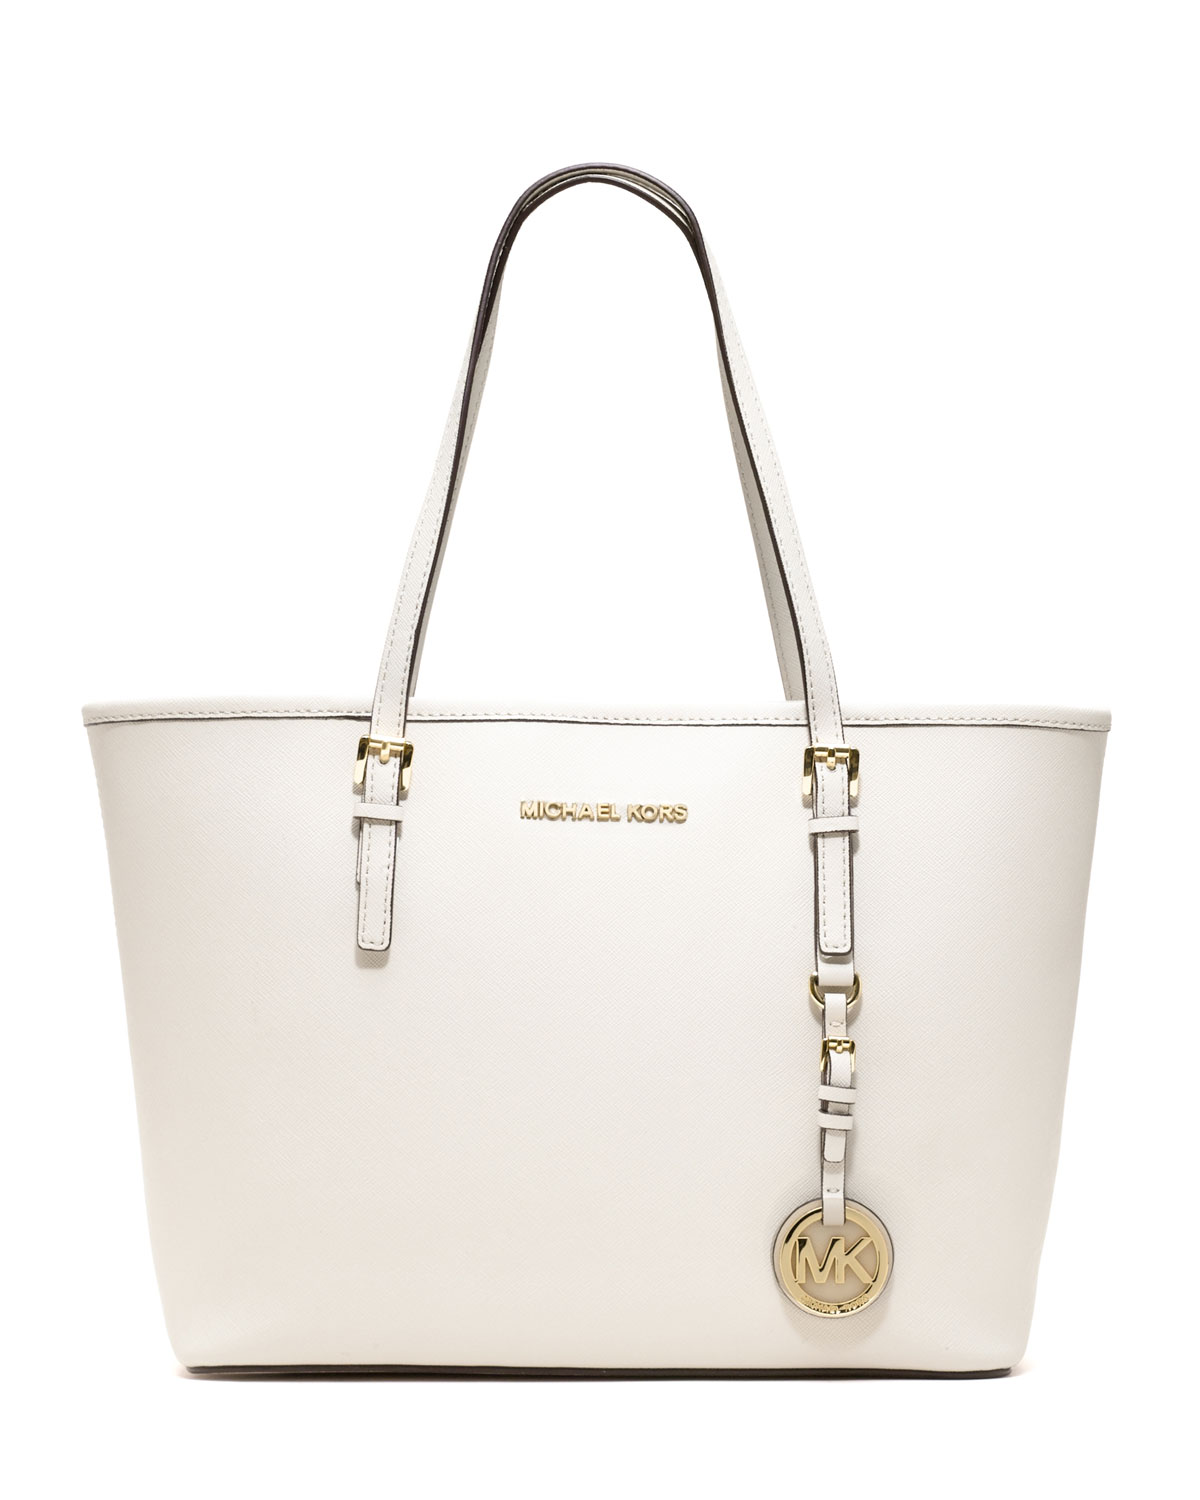 lyst michael kors michael jet set small saffiano travel tote in white. Black Bedroom Furniture Sets. Home Design Ideas